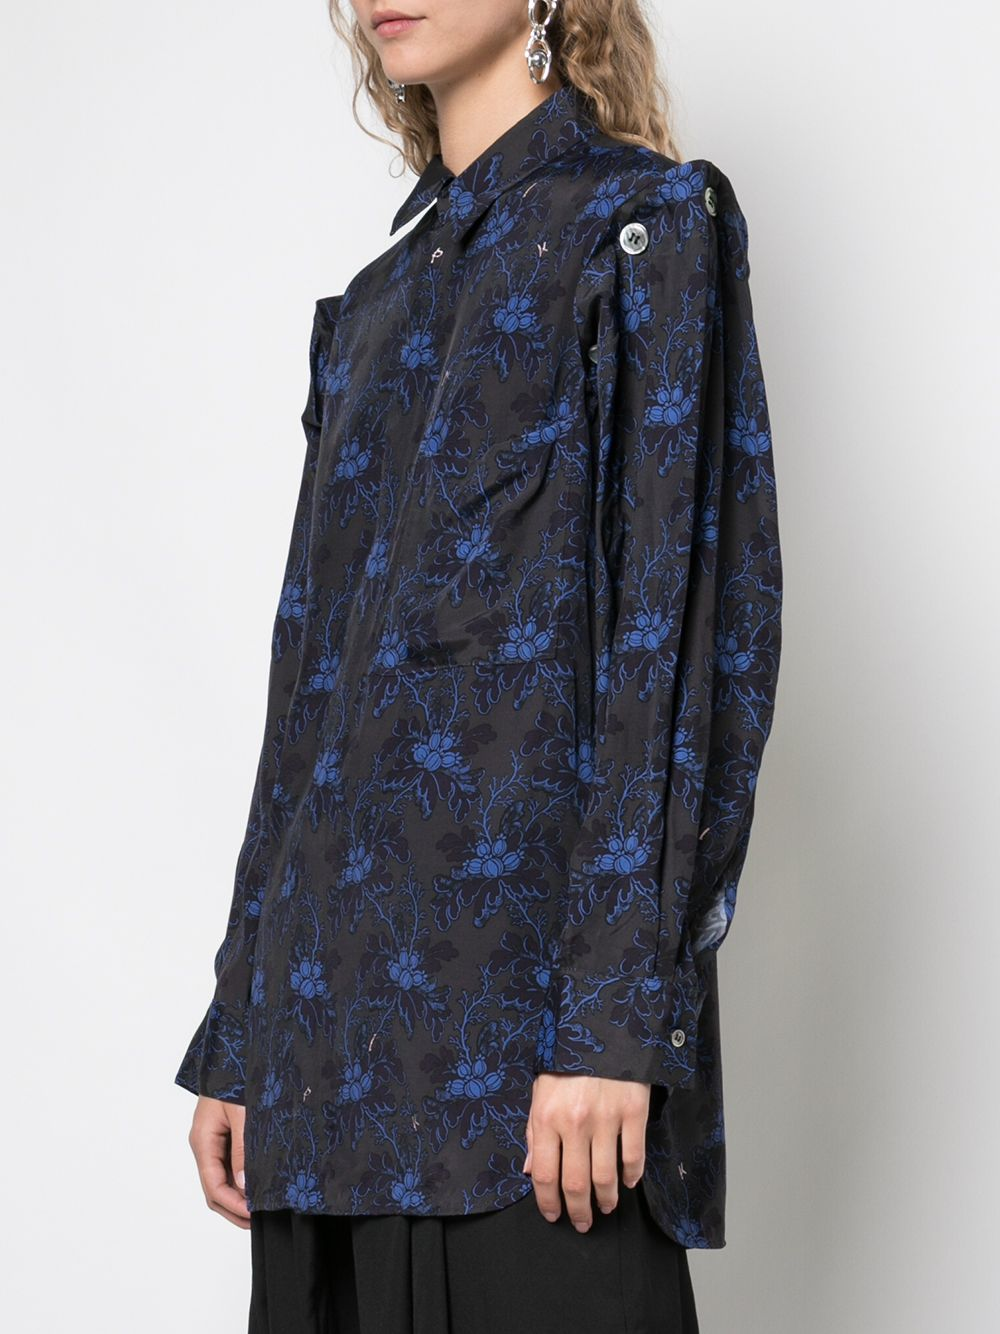 Y'S WOMEN FLOWER CALICO DETACHABLE SLEEVE SHIRT